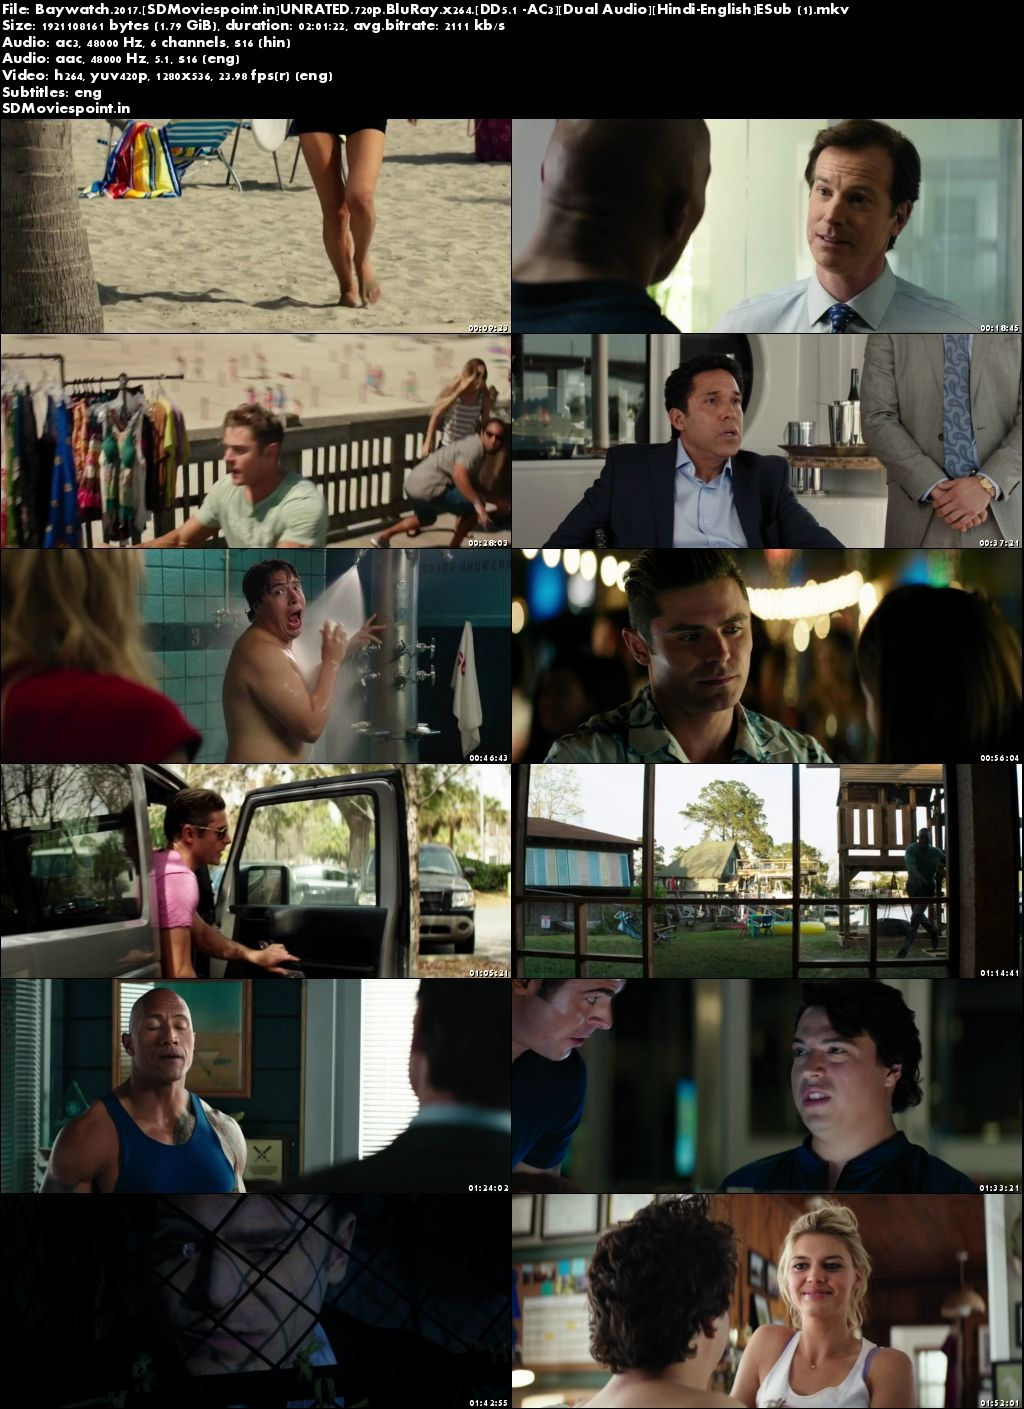 Screen Shots Baywatch 2017 Full Movie Download Hindi Dual Audio Free 720p BluRay